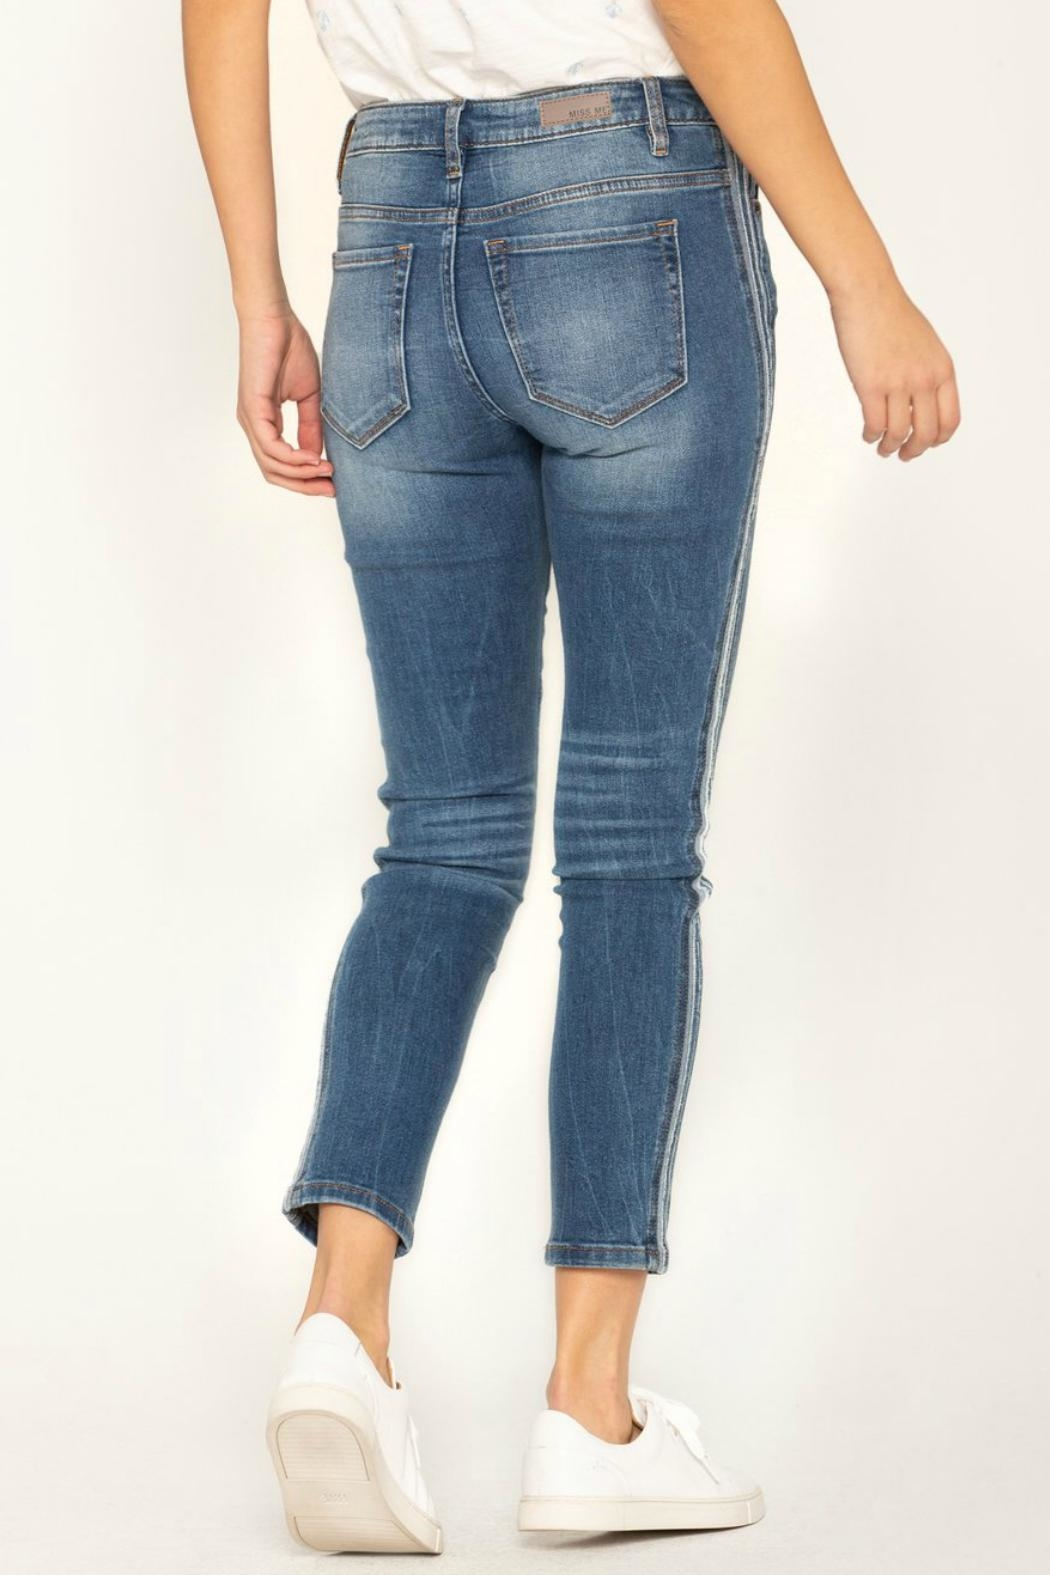 Miss Me So-Torn Mid-Rise Skinny-Jeans - Front Full Image